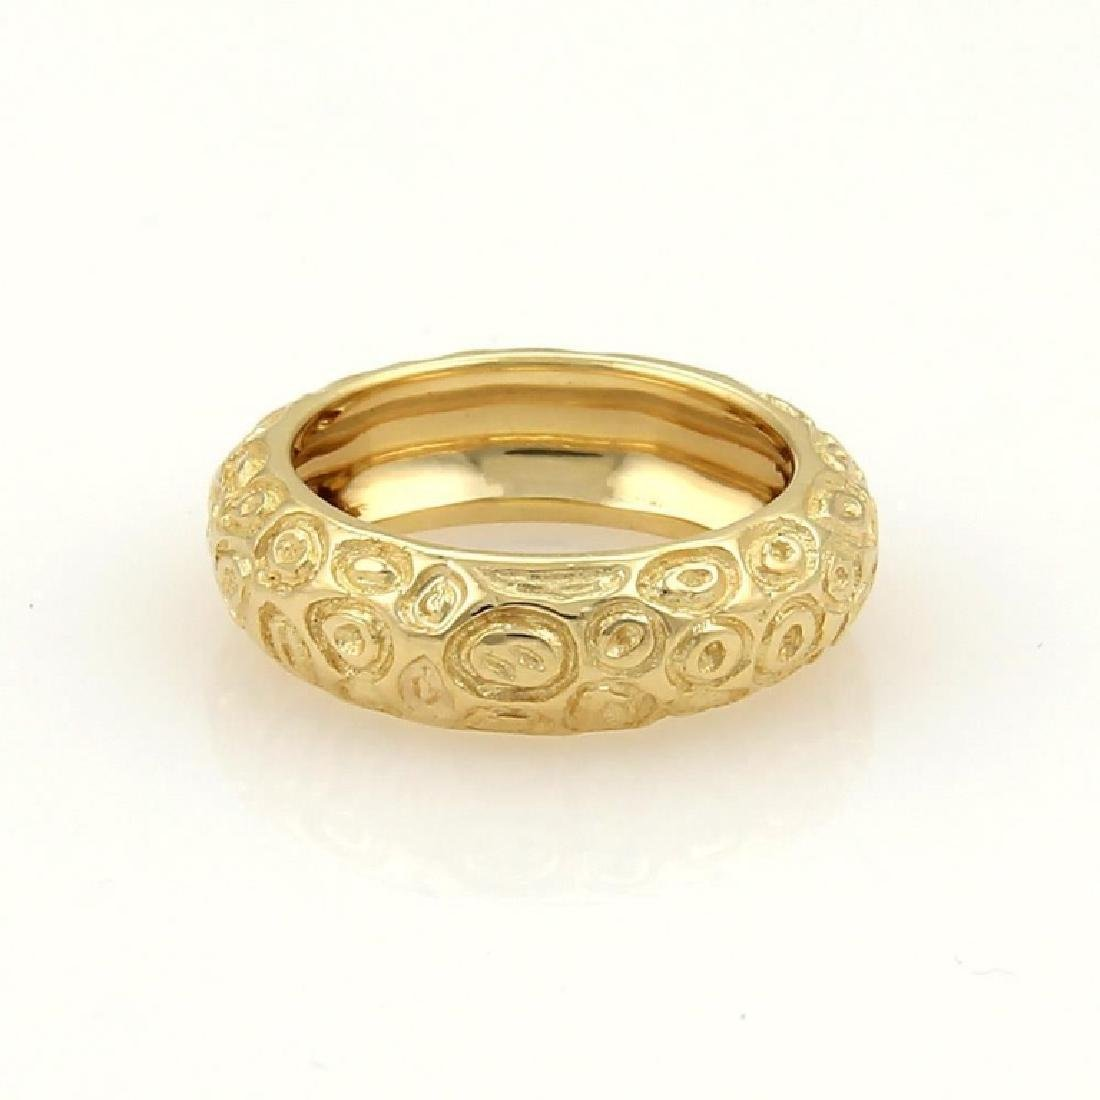 Vintage Cartier 18k Gold Textured Dome Band Ring - 2